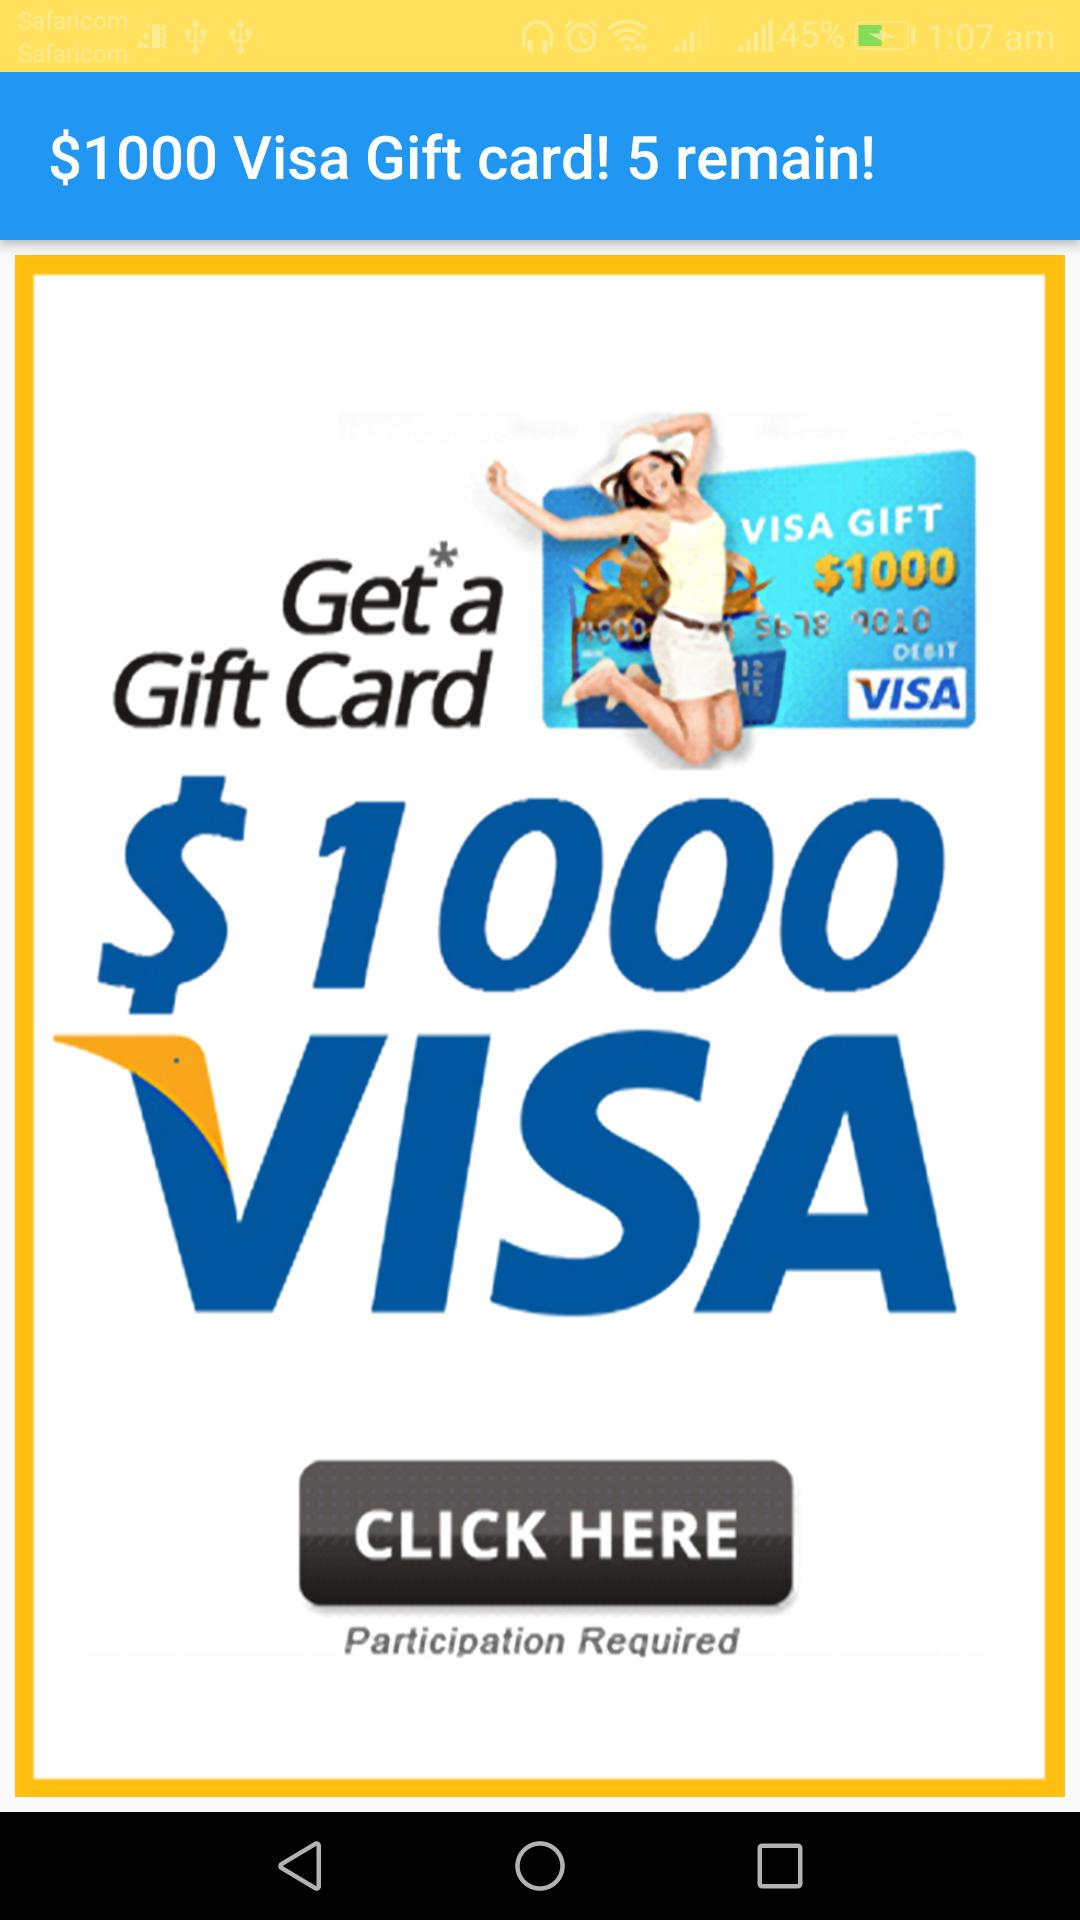 Money maker 2018: $1000 v-sa giftcard registry for Android - APK Download